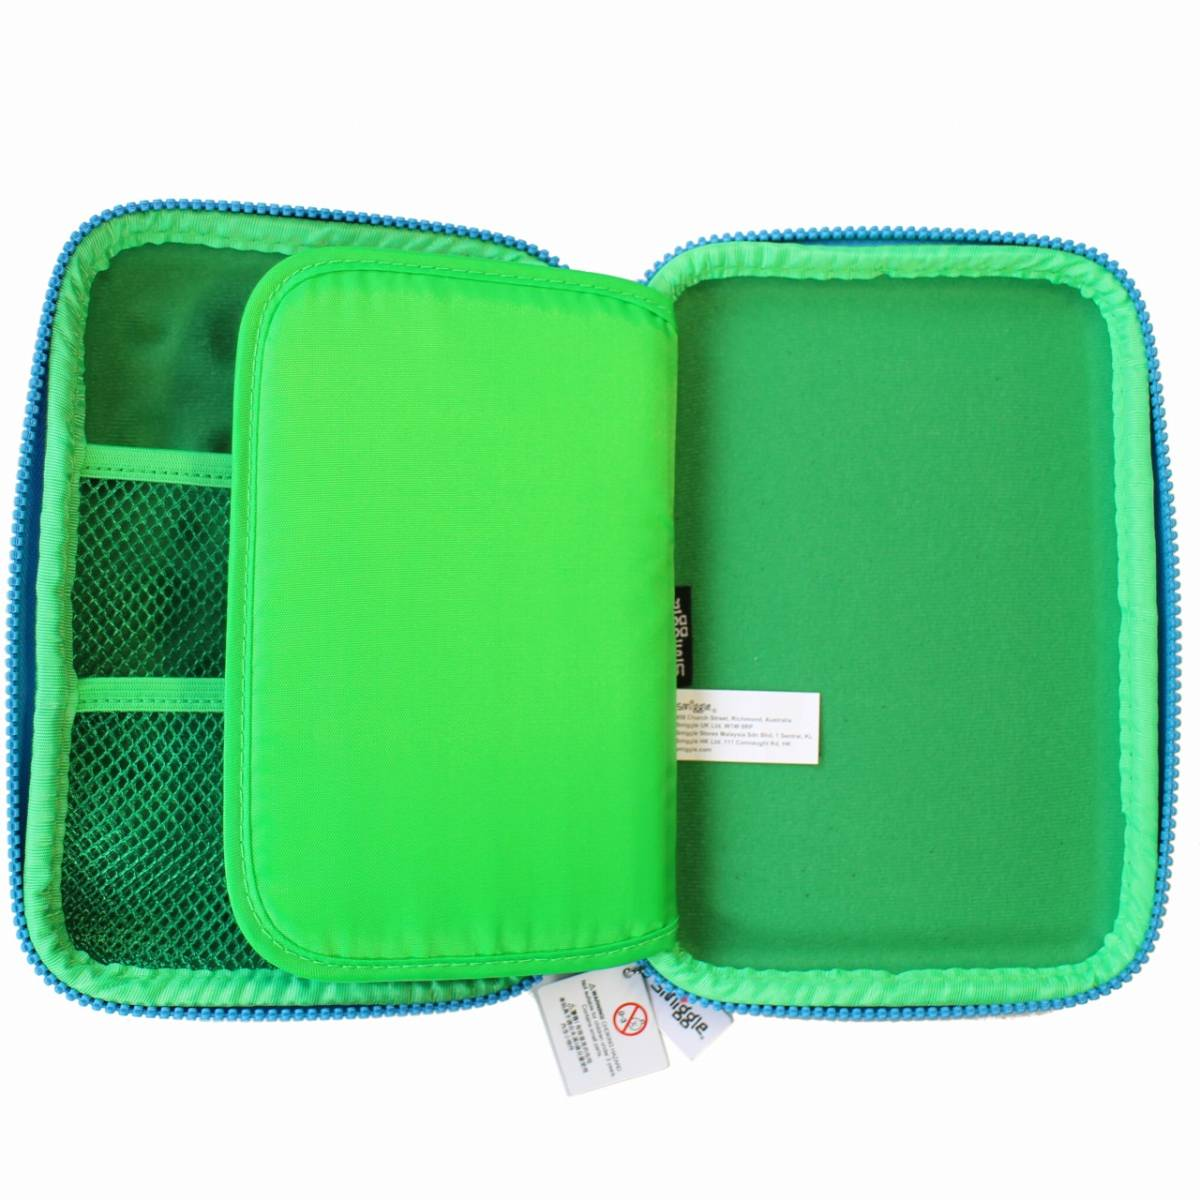 smiggle スミグル 筆箱と文房具 ギフトセットB Bubble Hardtop Crazy Gift Pack (Green) 新品 送料込み メイクケース ポーチ コスメケース_画像6